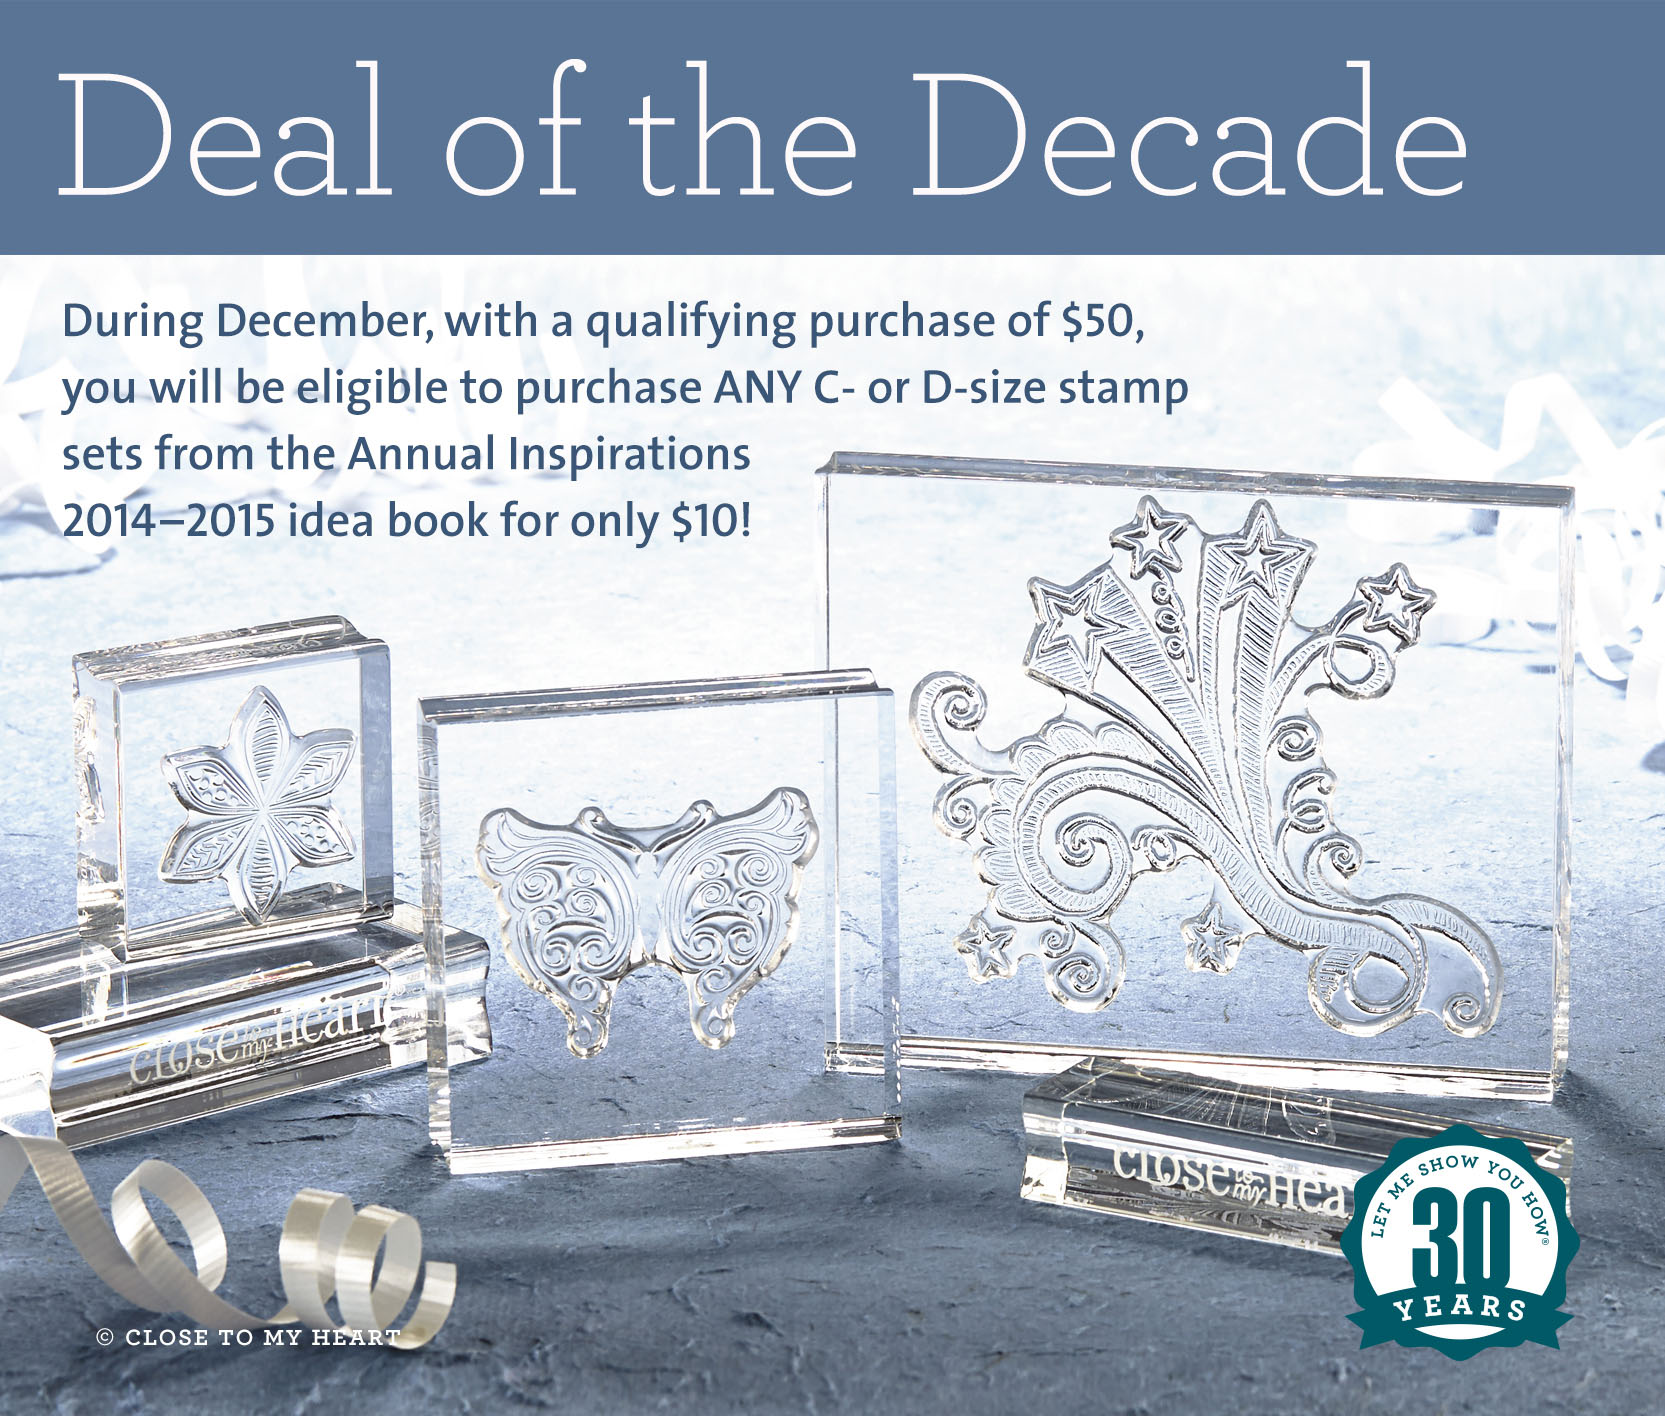 CTMH December Special - Deal of the Decade